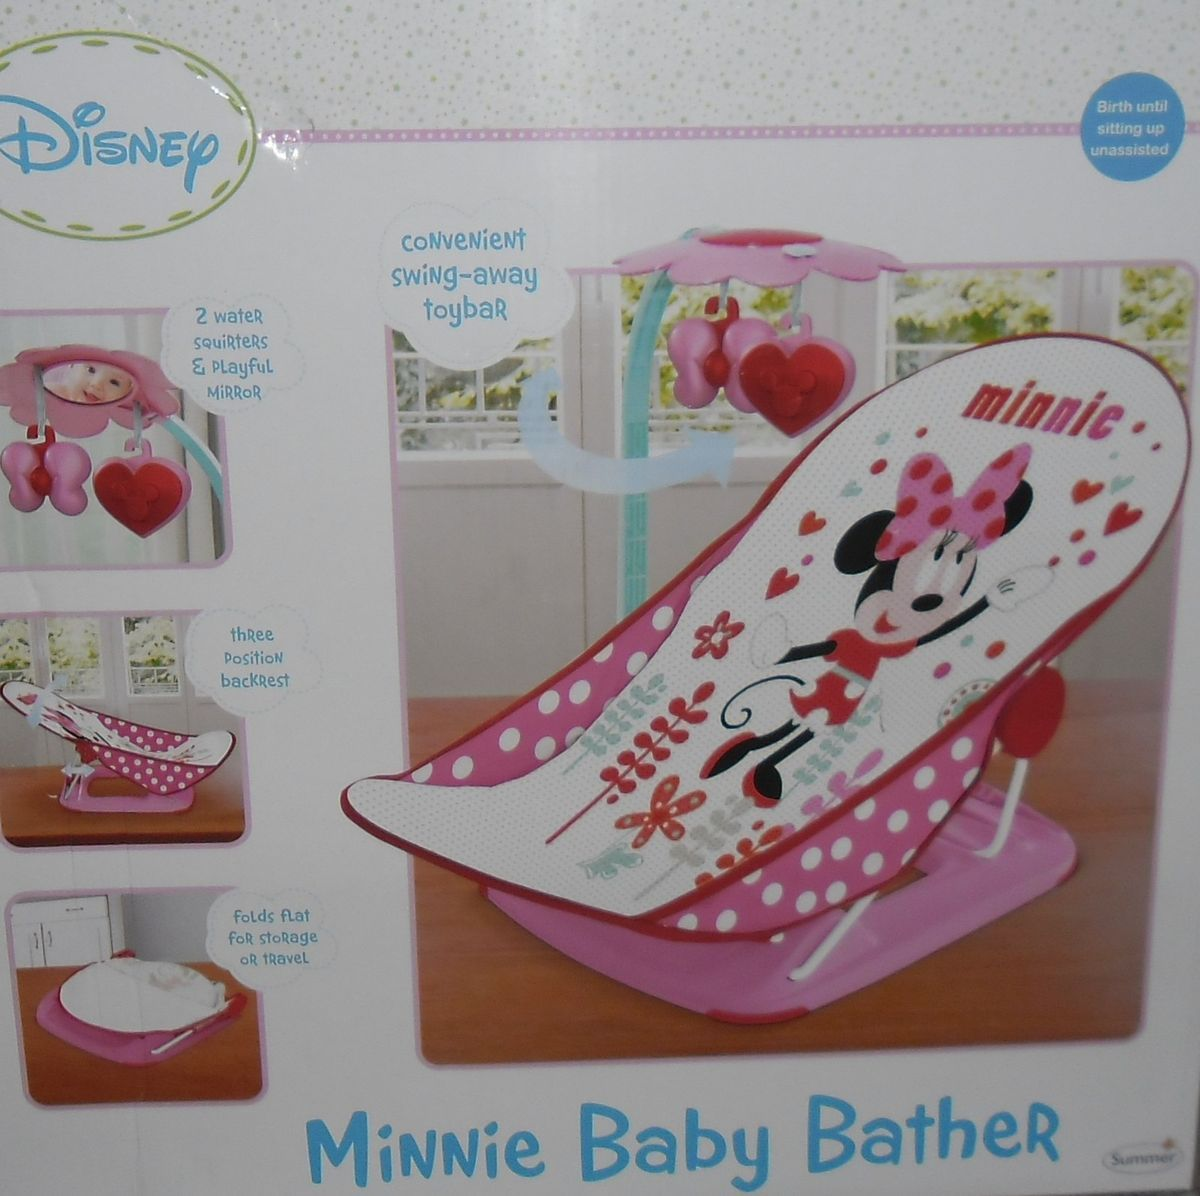 Disney Minnie Mouse Baby Bath Tub Bather Bathtub New